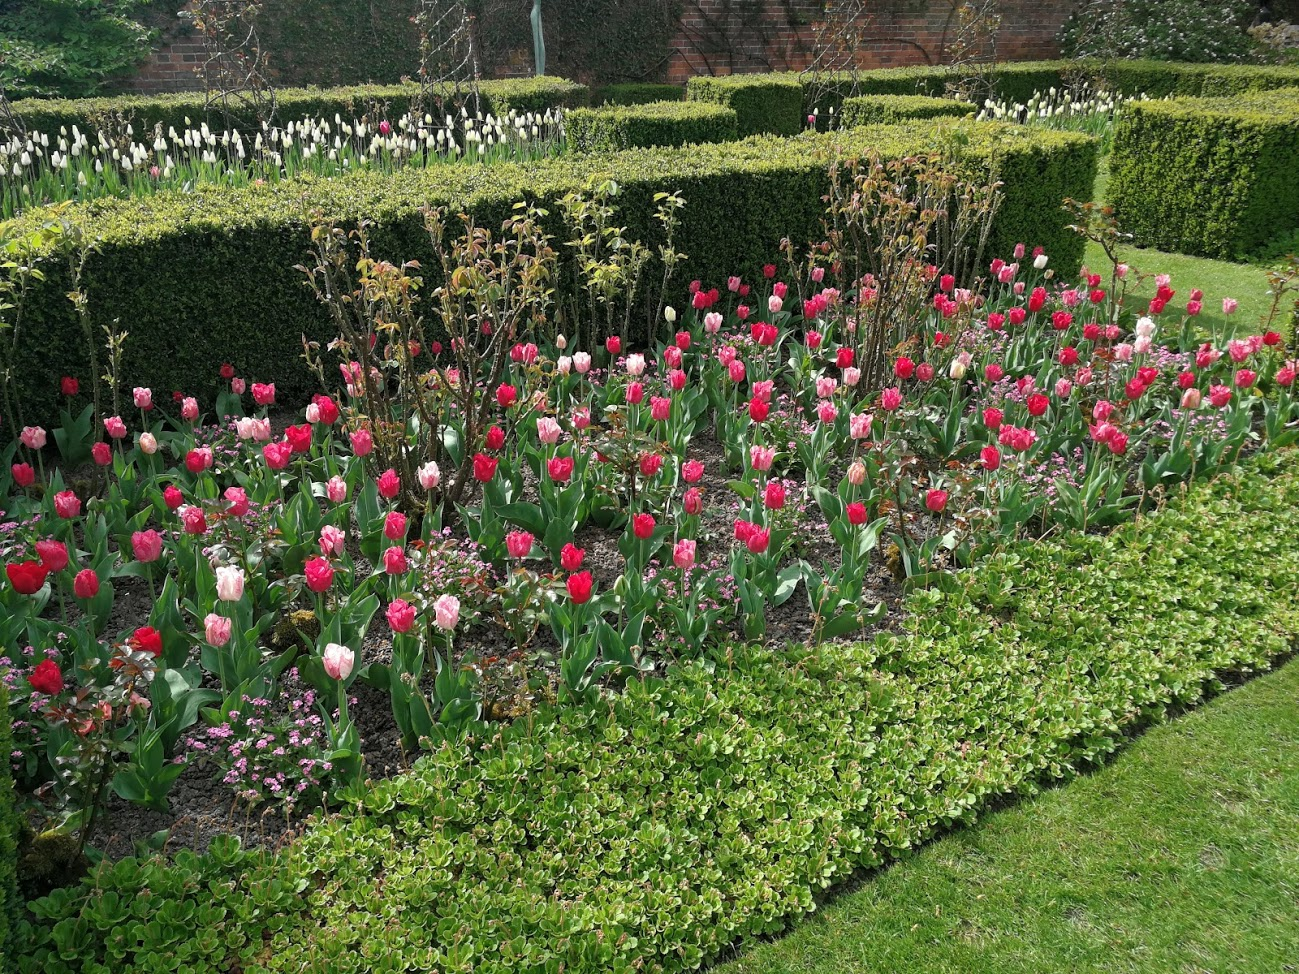 How To Care for Your Tulips